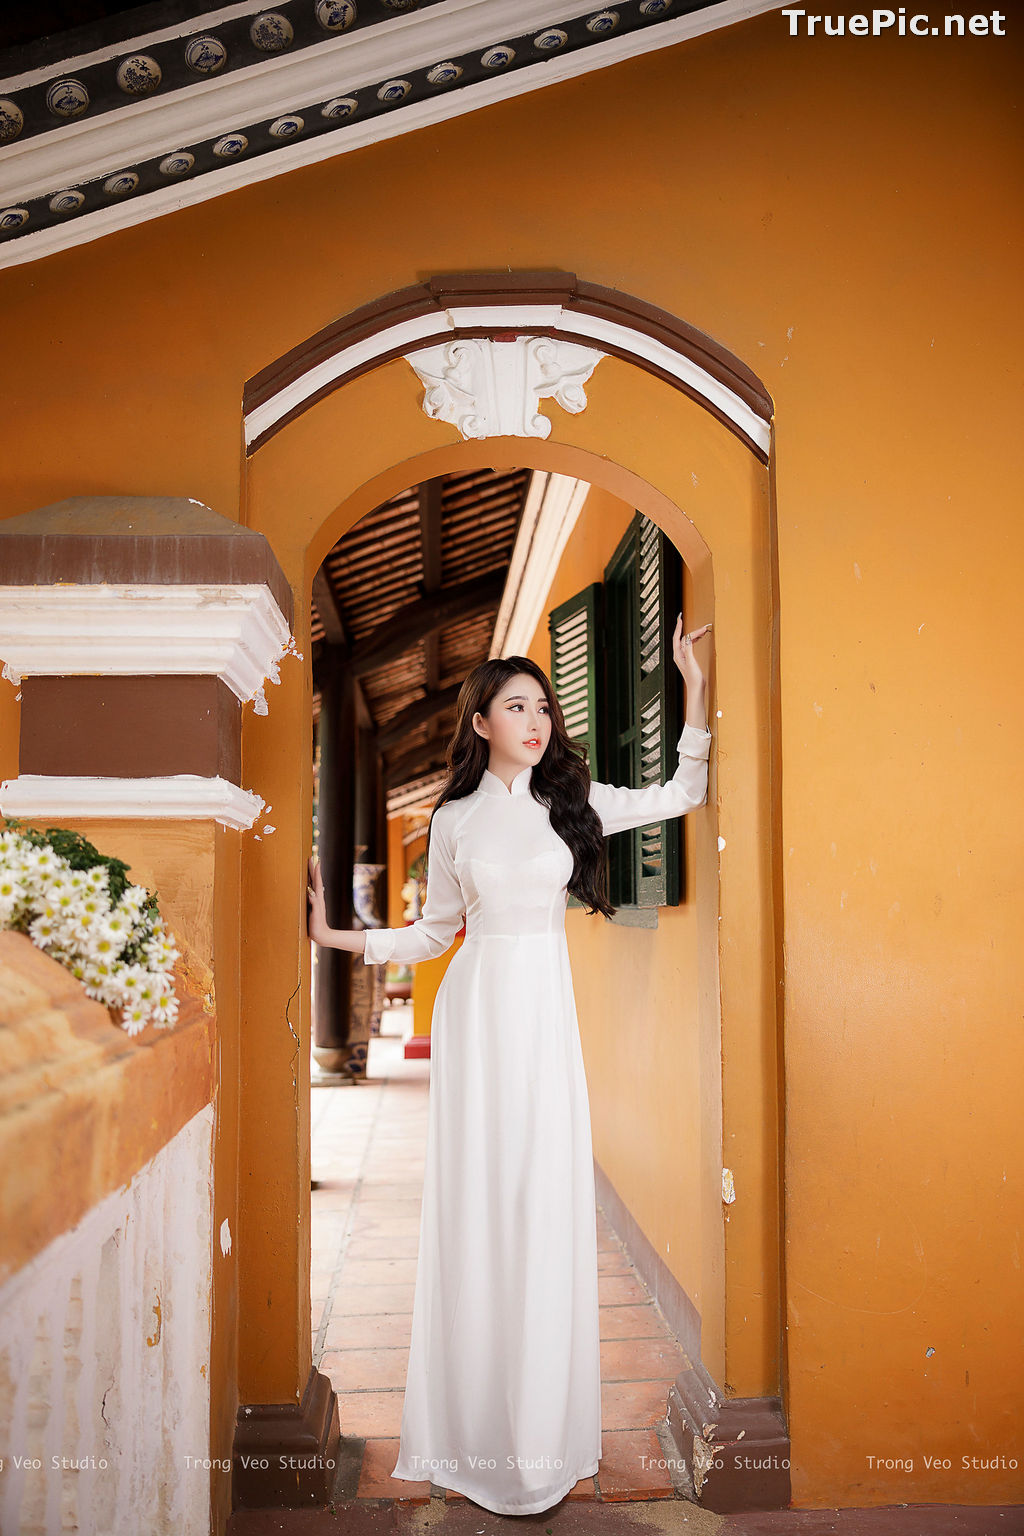 Image The Beauty of Vietnamese Girls with Traditional Dress (Ao Dai) #3 - TruePic.net - Picture-7